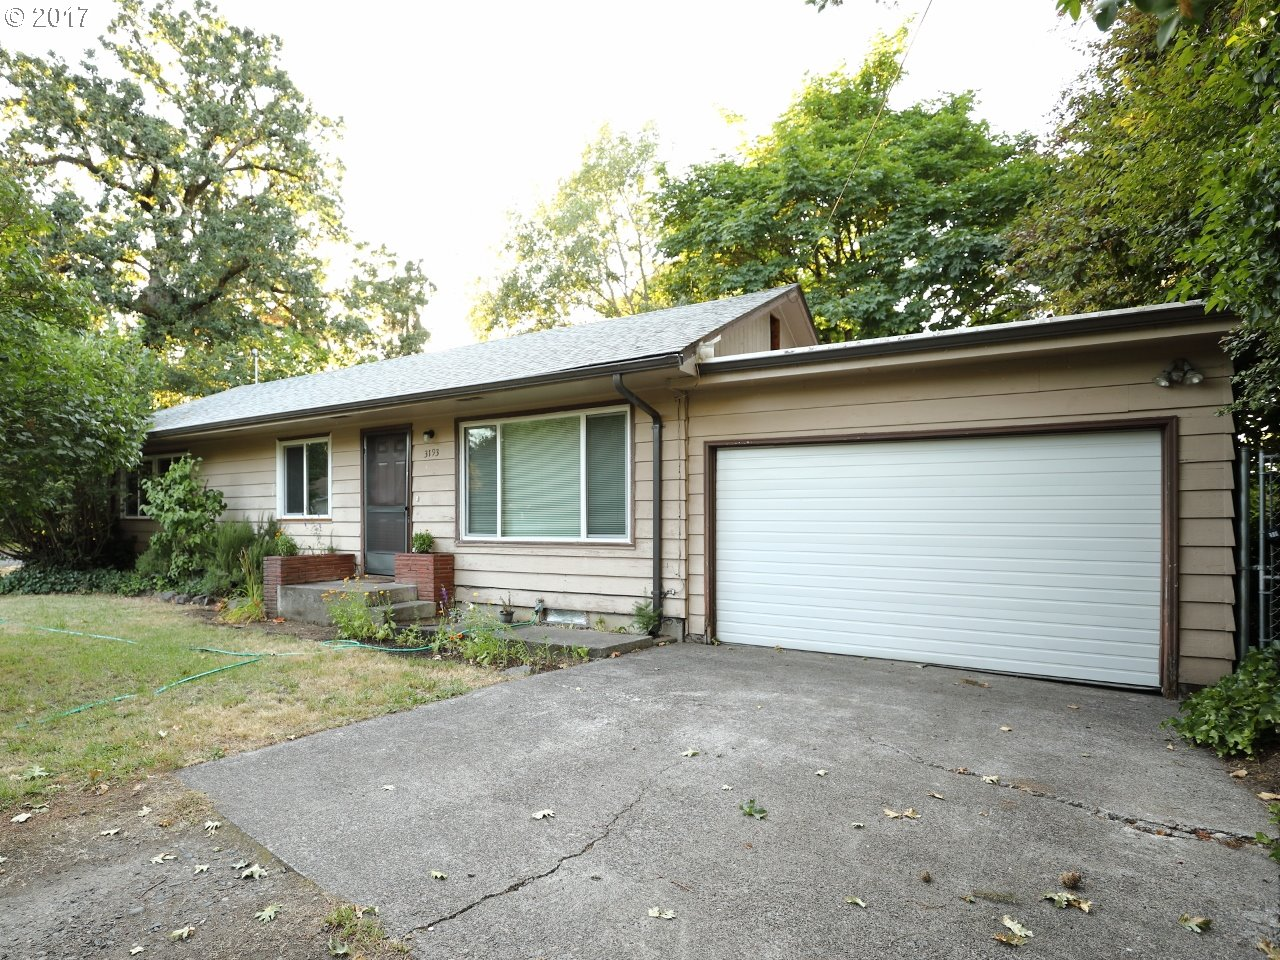 3193 W 14TH AVE, Eugene, OR 97402